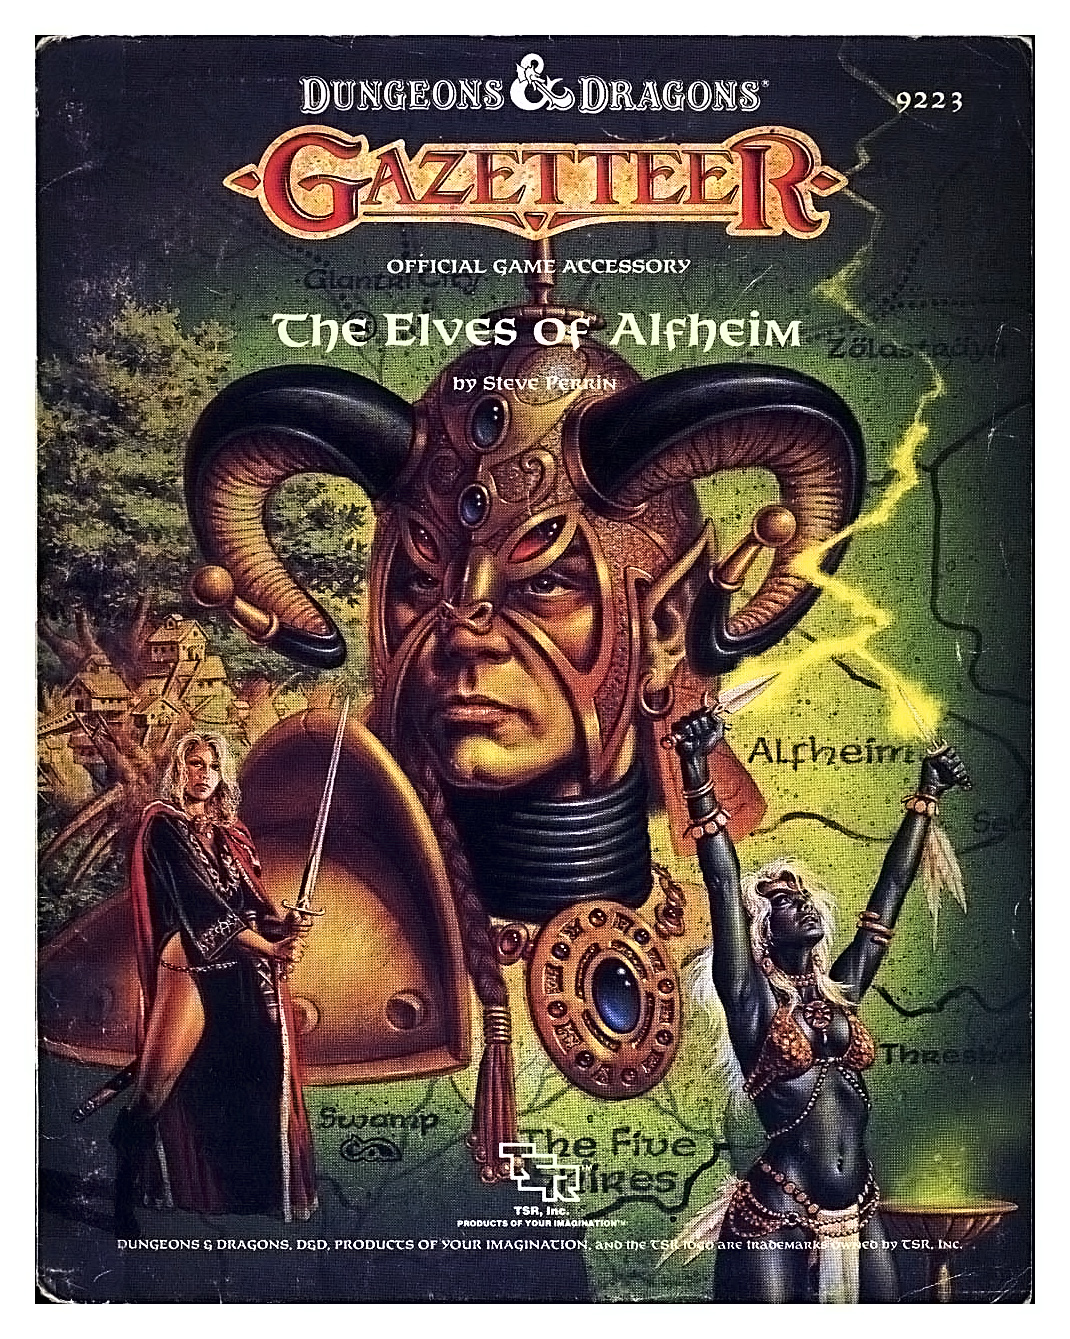 dark elf high elf wood elf Drow e altri elfi di Alfheim (la regione di Mystara...) - by Clyde Caldwell TSR - Gazetteer, The Elves of Alfheim (1988-03) © Wizards of the Coast & Hasbro